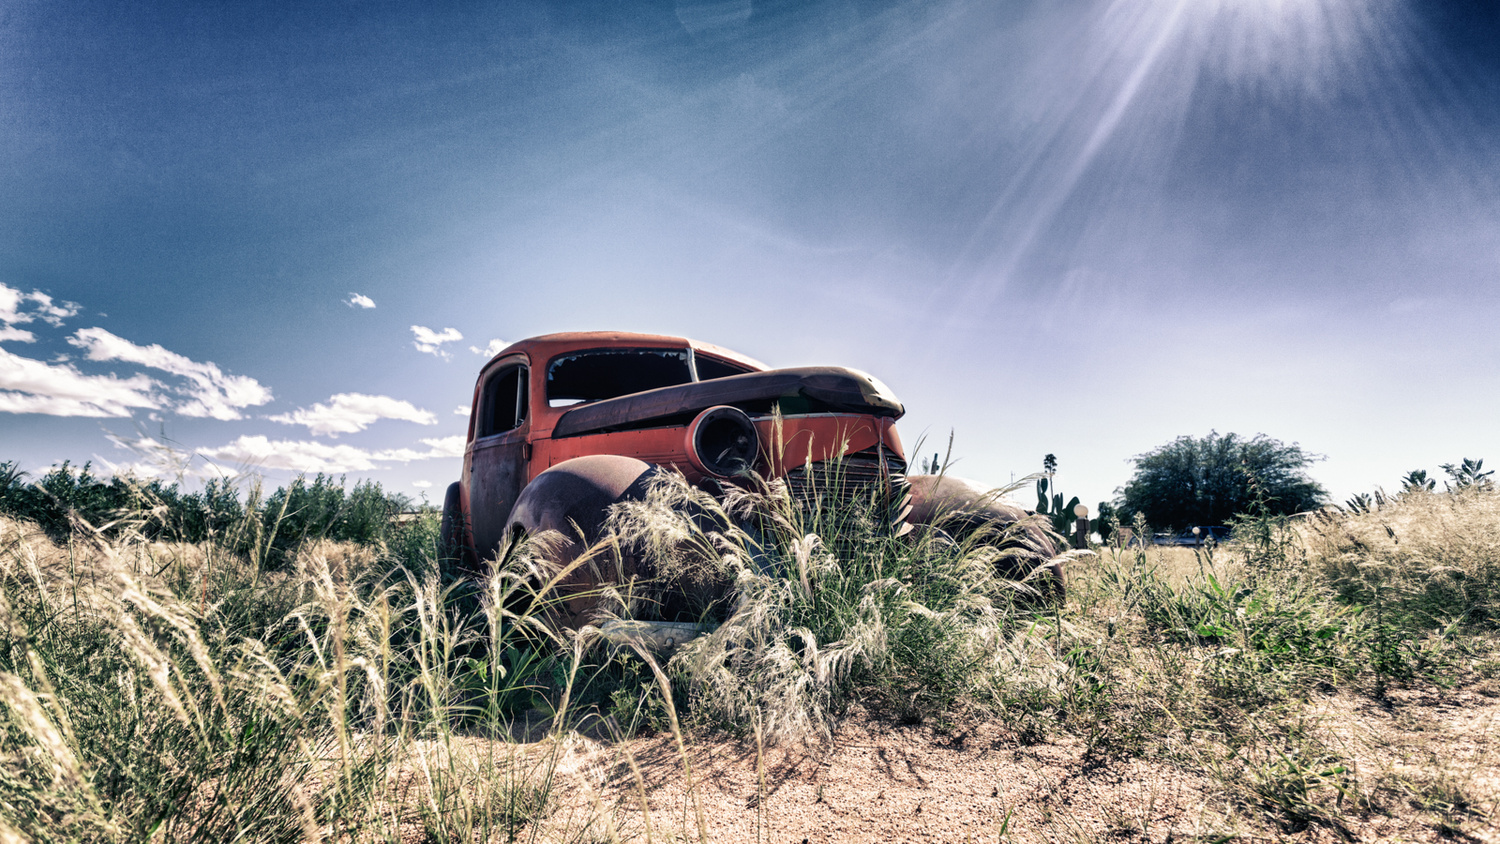 Rusted by Philippe Clairo